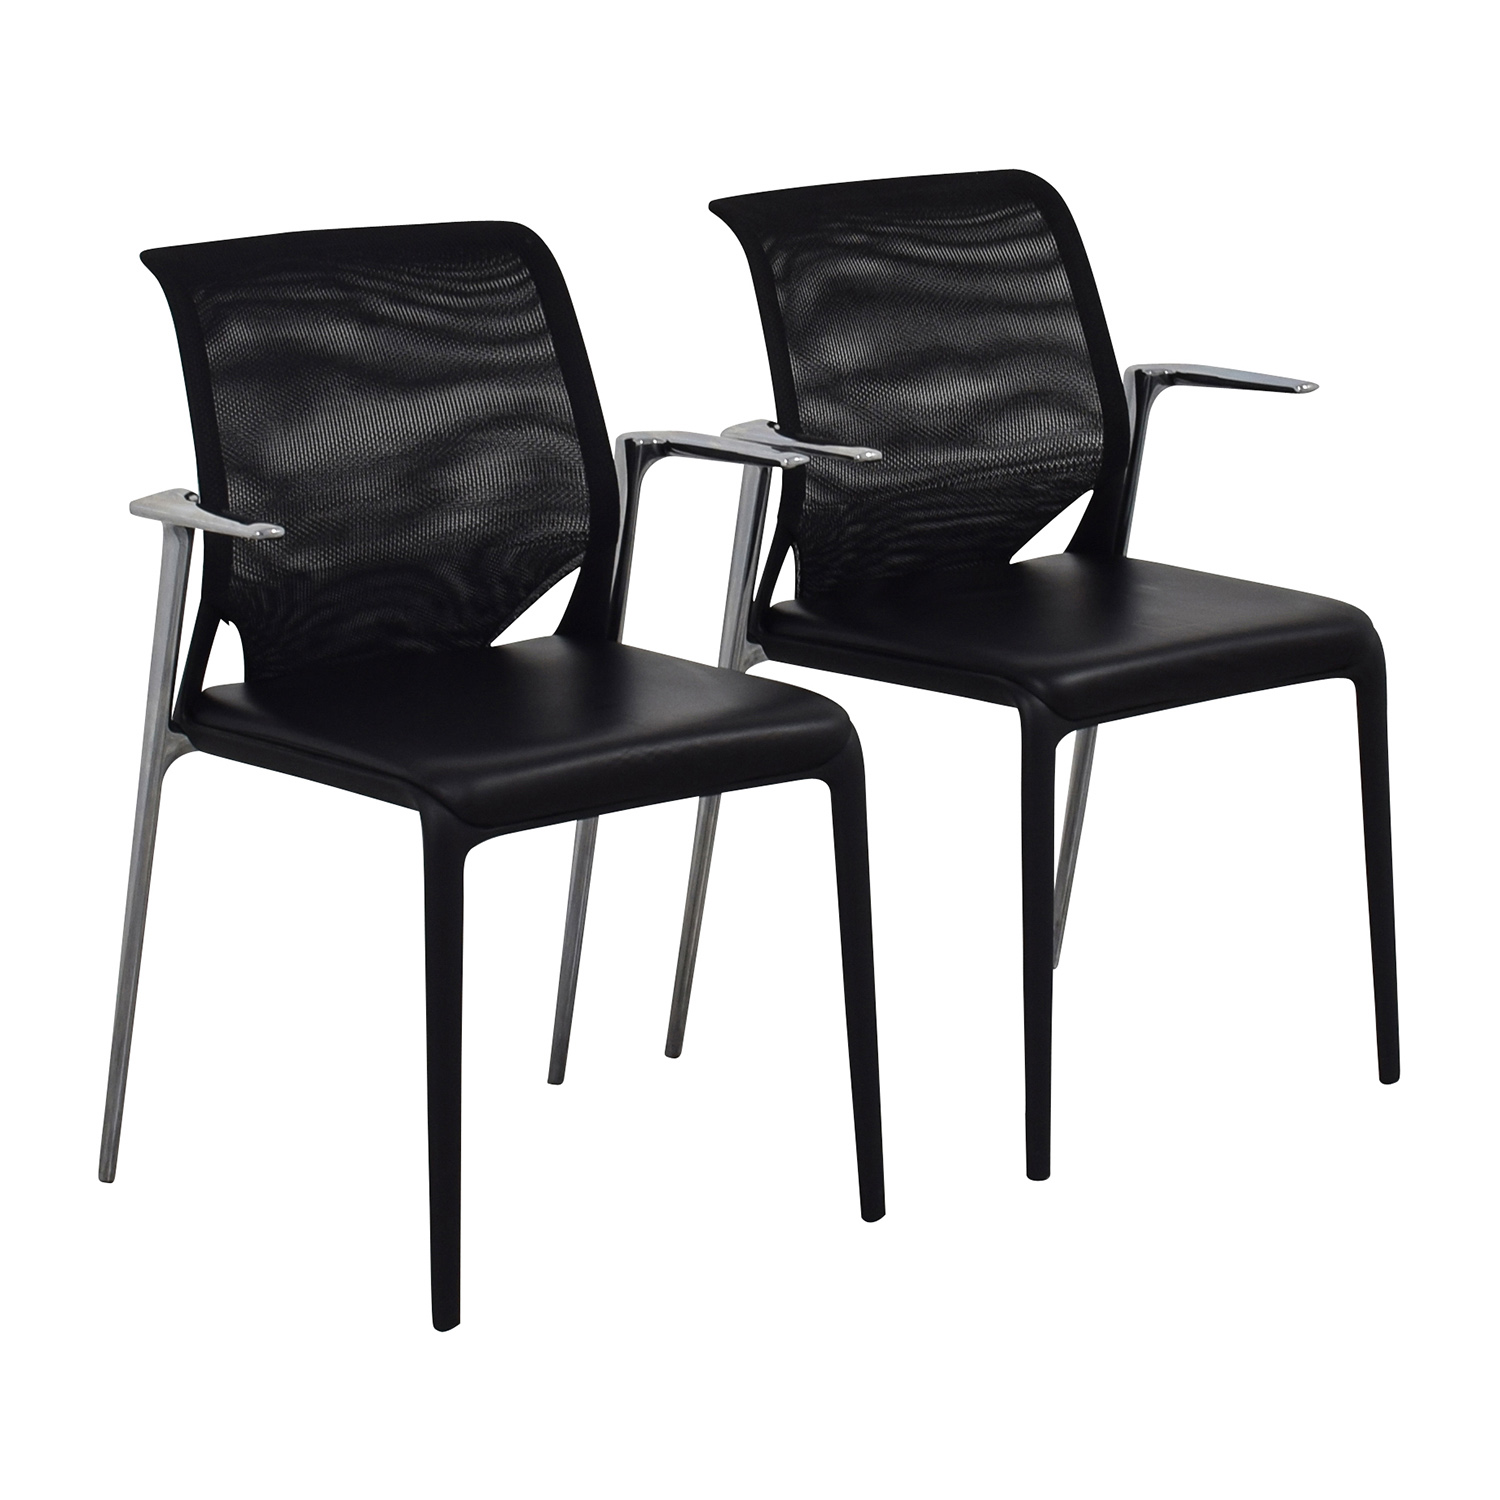 65 off vitra vitra medaslim leather armchair chairs for Vitra armchair gebraucht